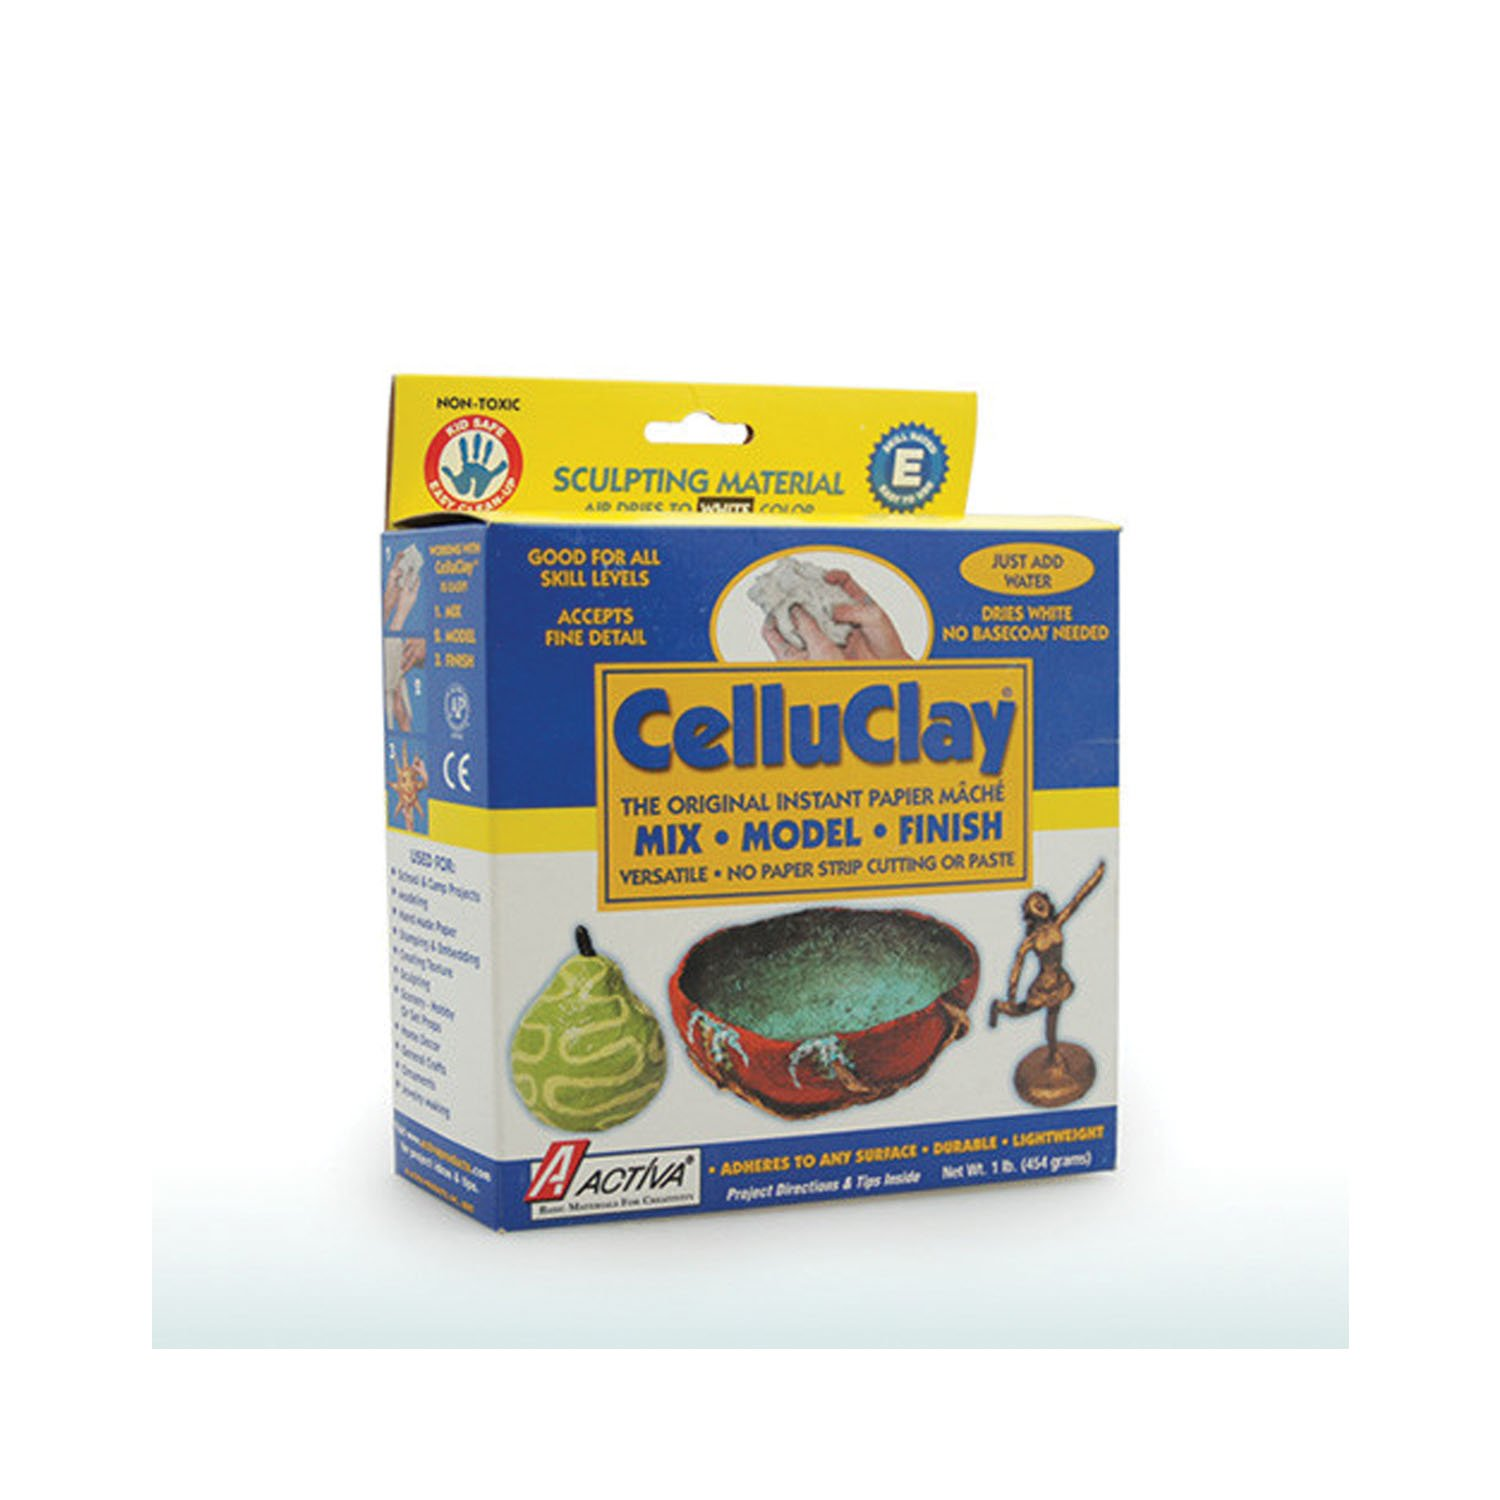 Activa Products Celluclay Instant Papier Mache (Bright White) - 1 Lb.